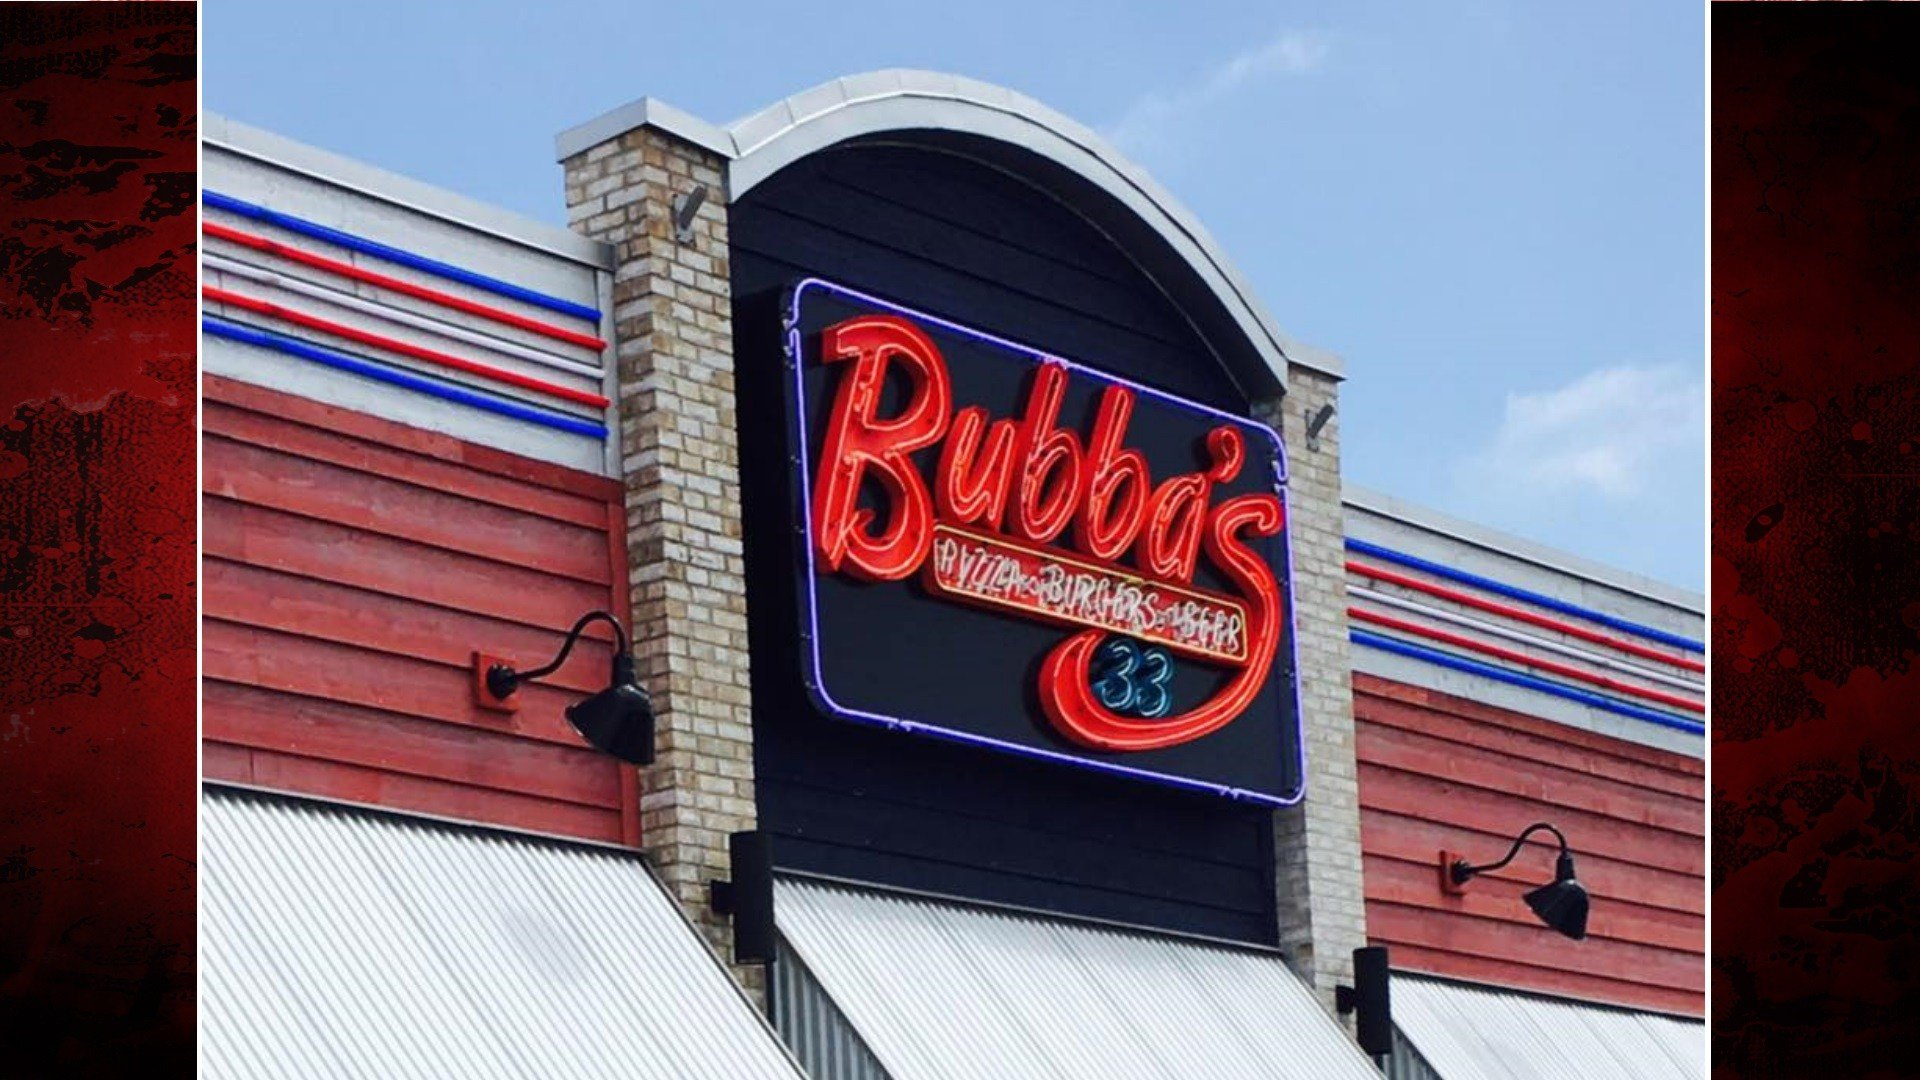 Photo Crtsy: Bubba's 33 Corpus Christi, Texas